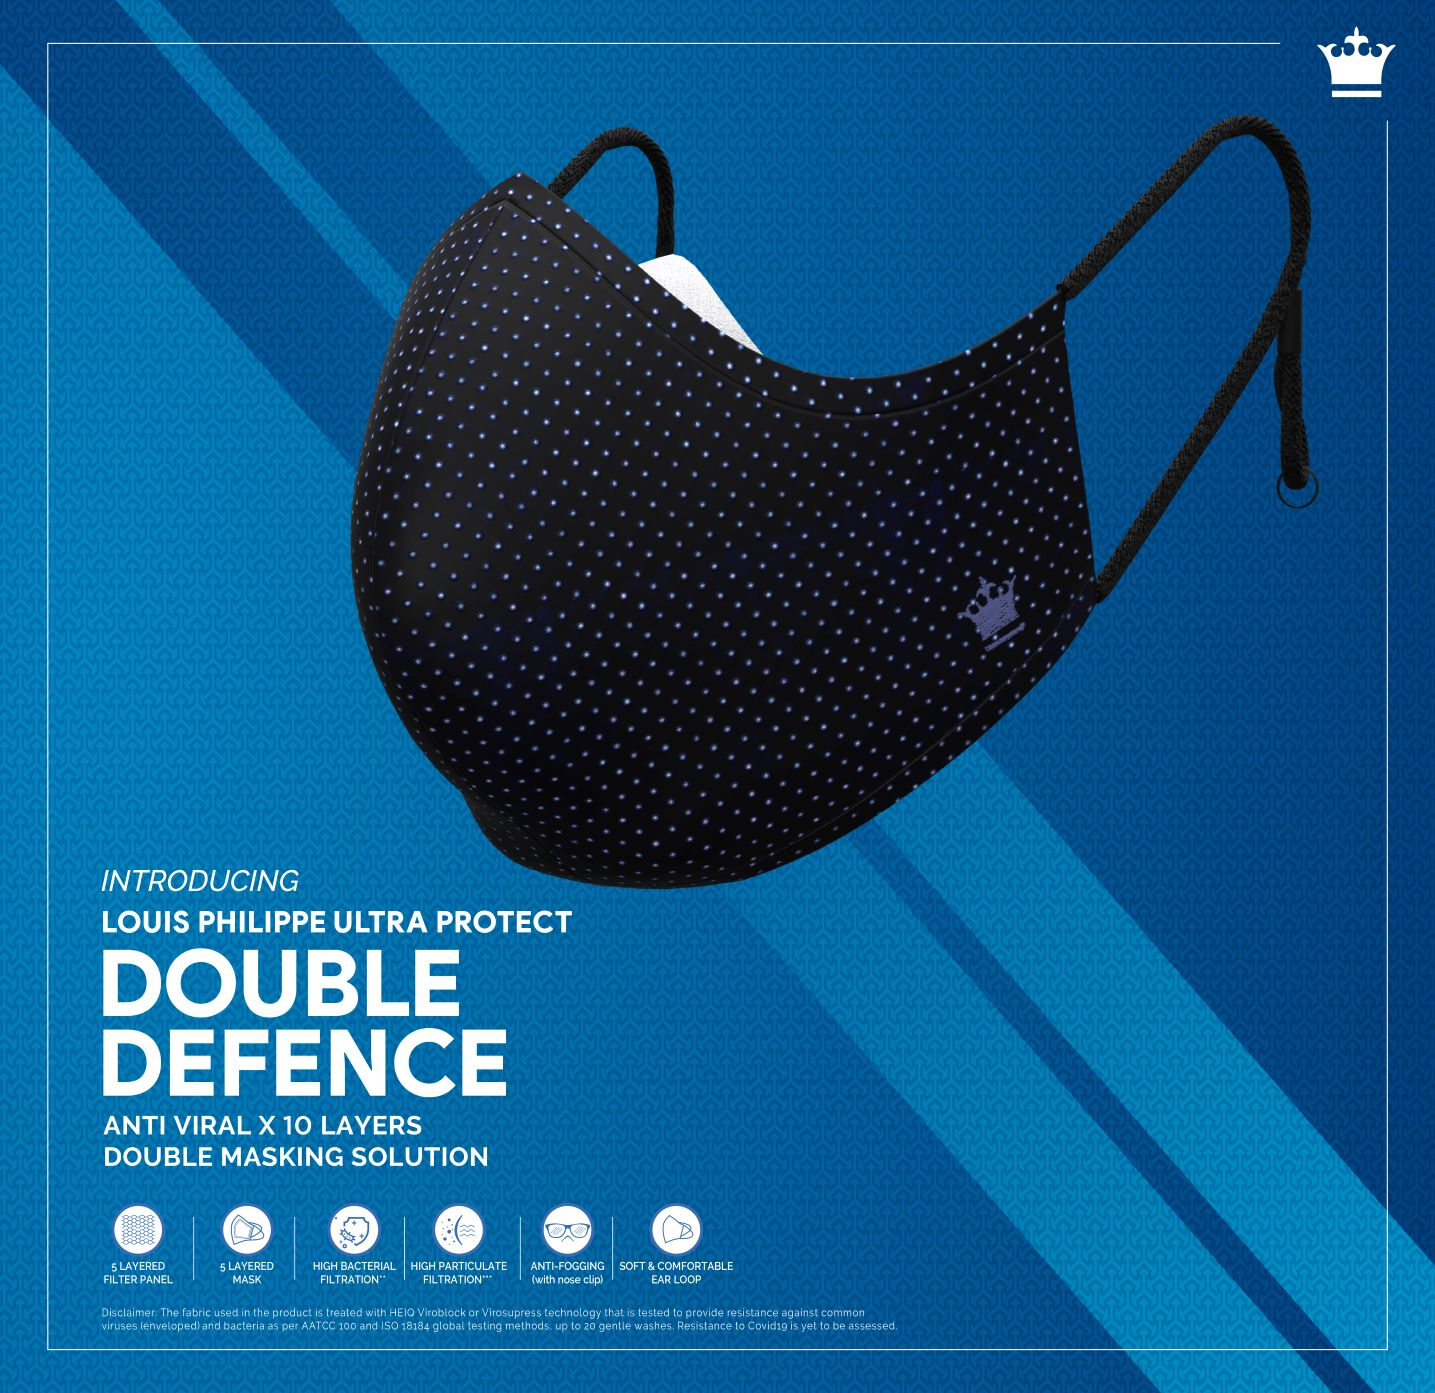 Louis Philippe launches UltraProtect Double Defence Mask